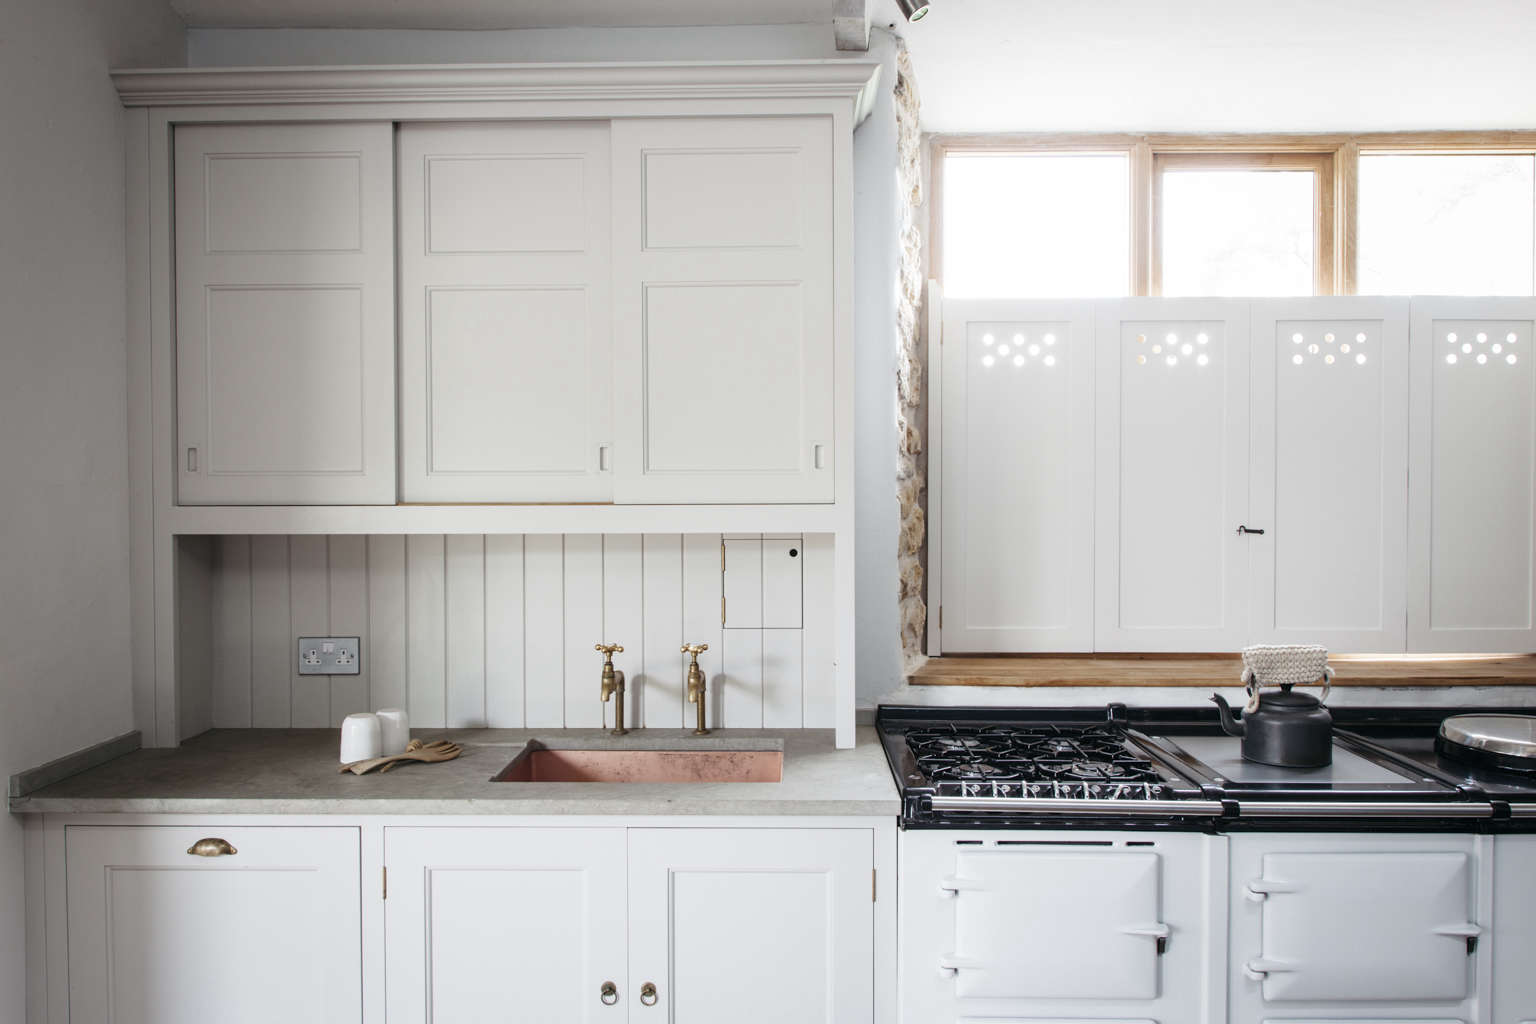 English Style Kitchen Kitchen Of The Week The Plain English Power In Numbers